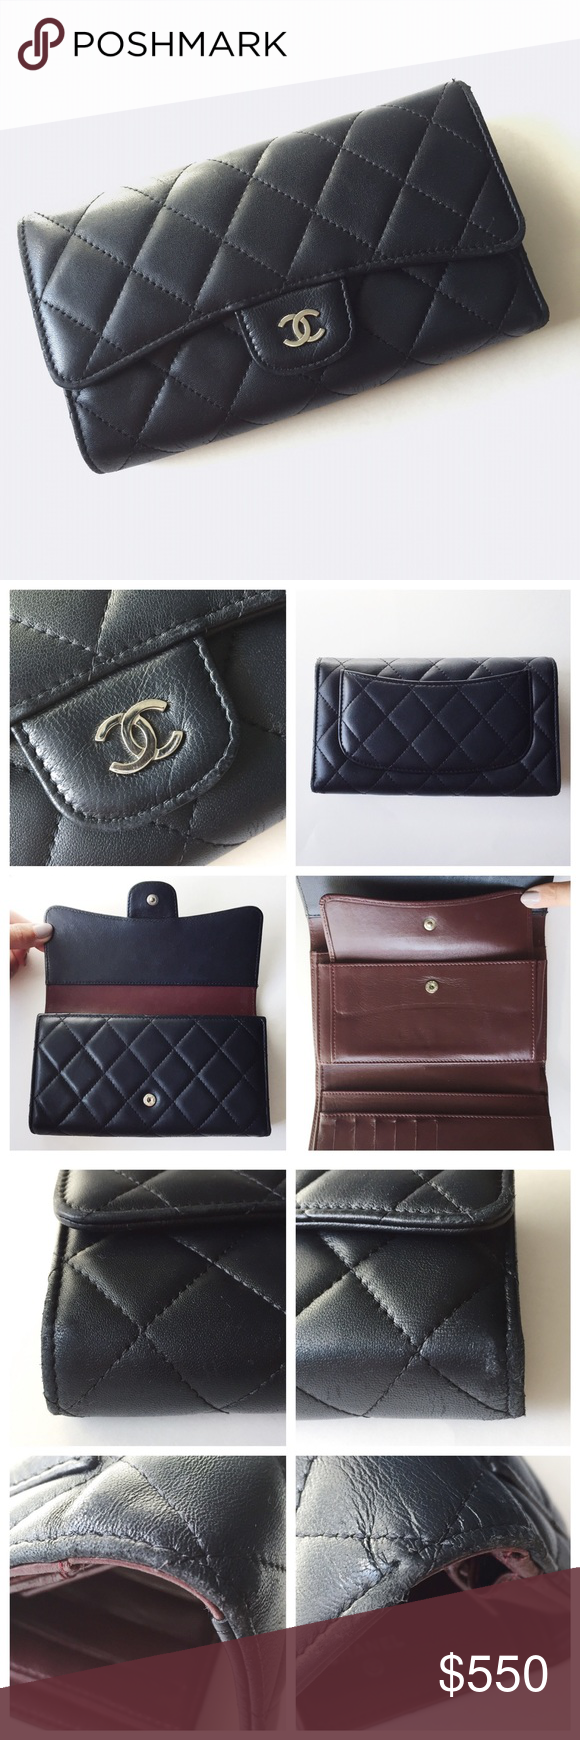 a29e94cb9214 Classic Chanel Flap Wallet Black lambskin and burgundy with silver hardware  tri fold wallet. Size